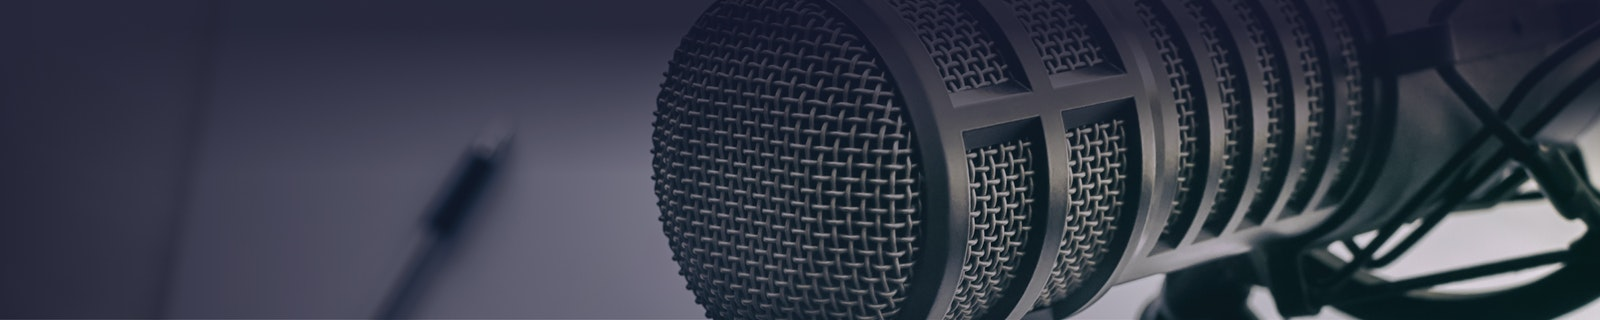 insights-podcast-header-background